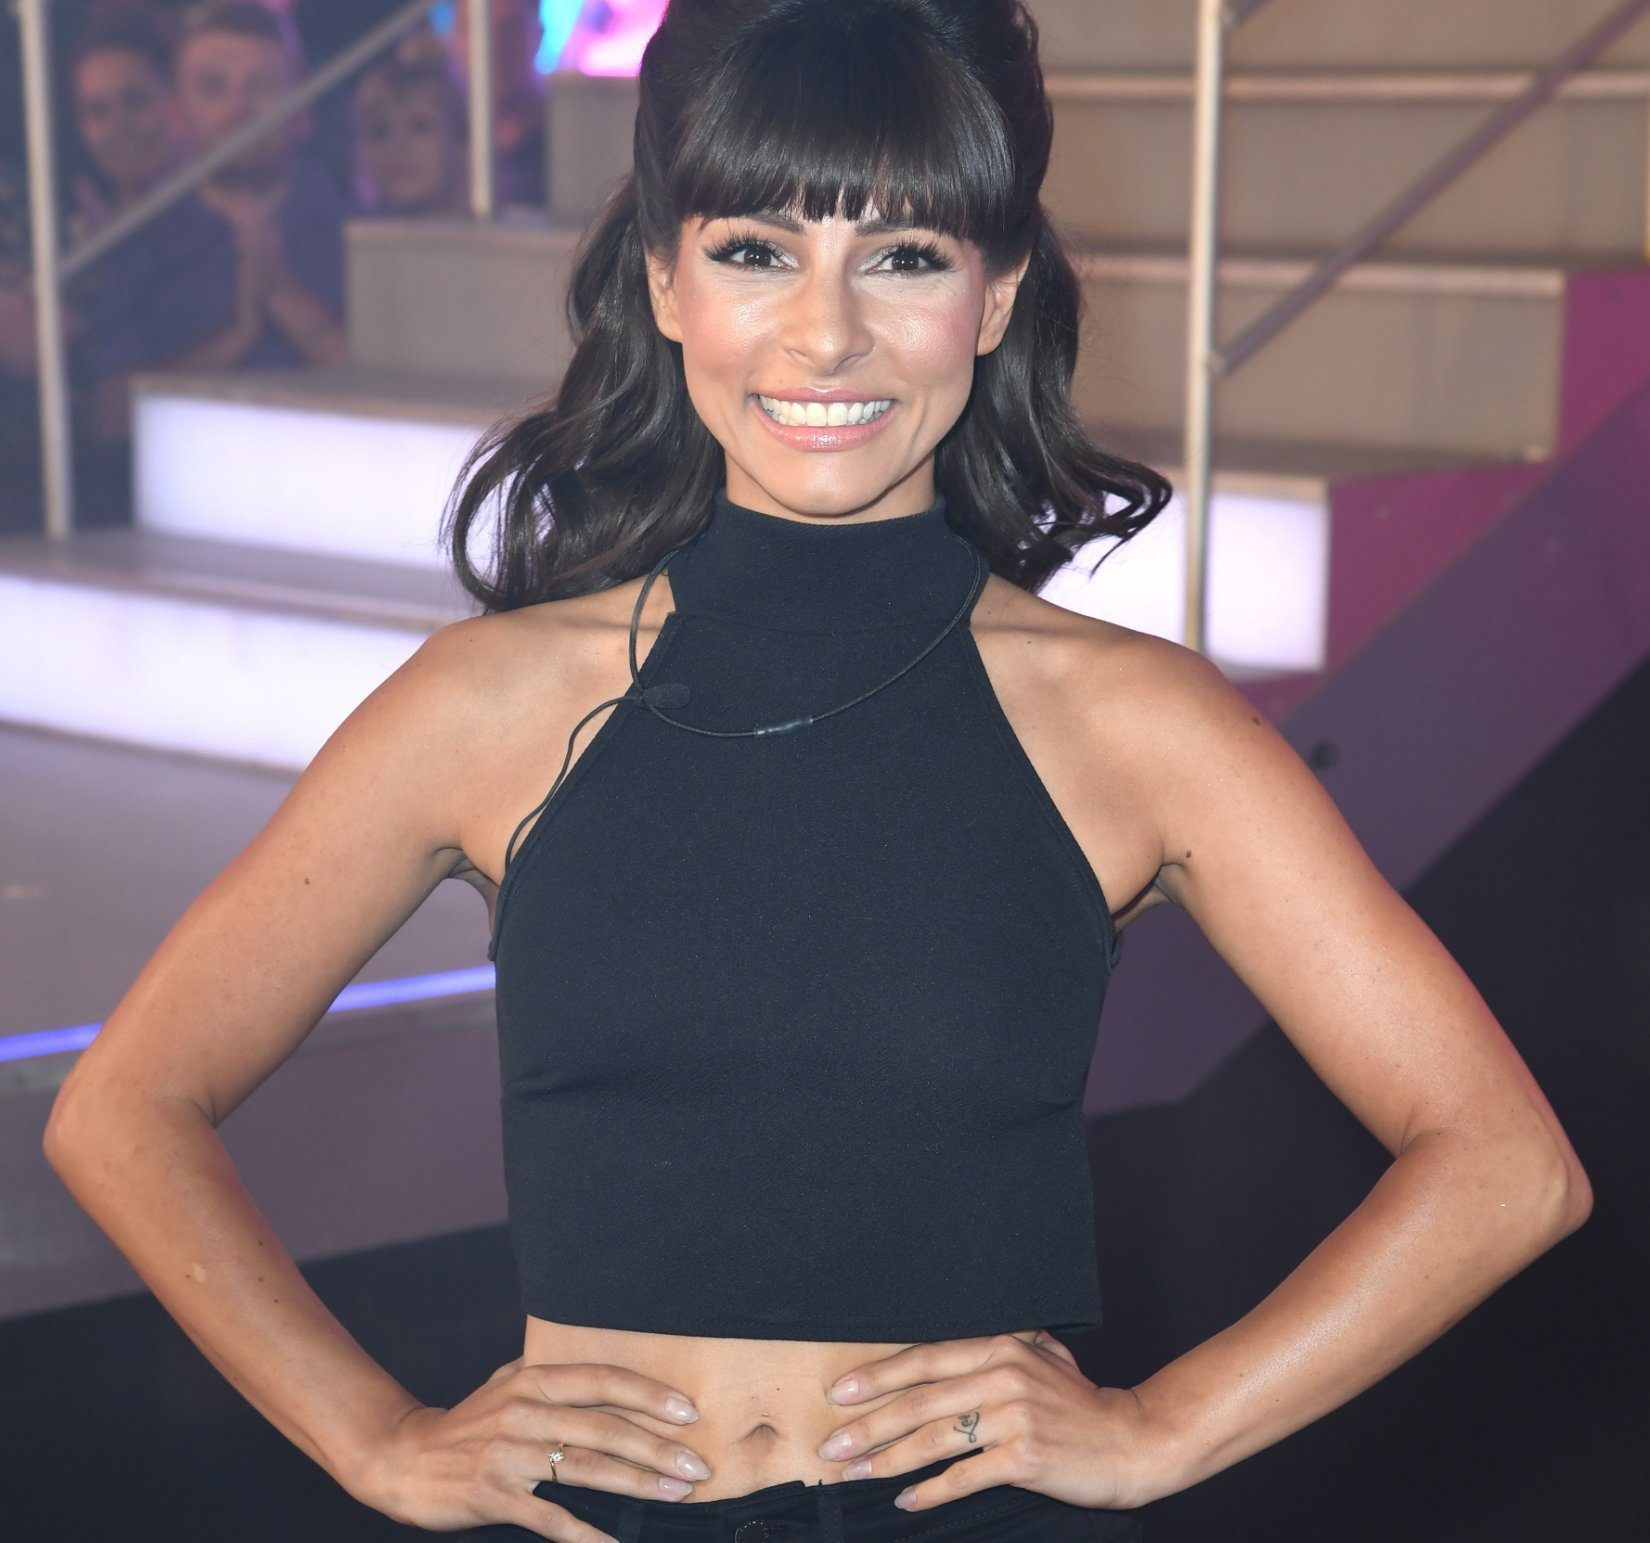 Roxanne Pallett claims her hair fell out after backlash over Ryan Thomas punch claims